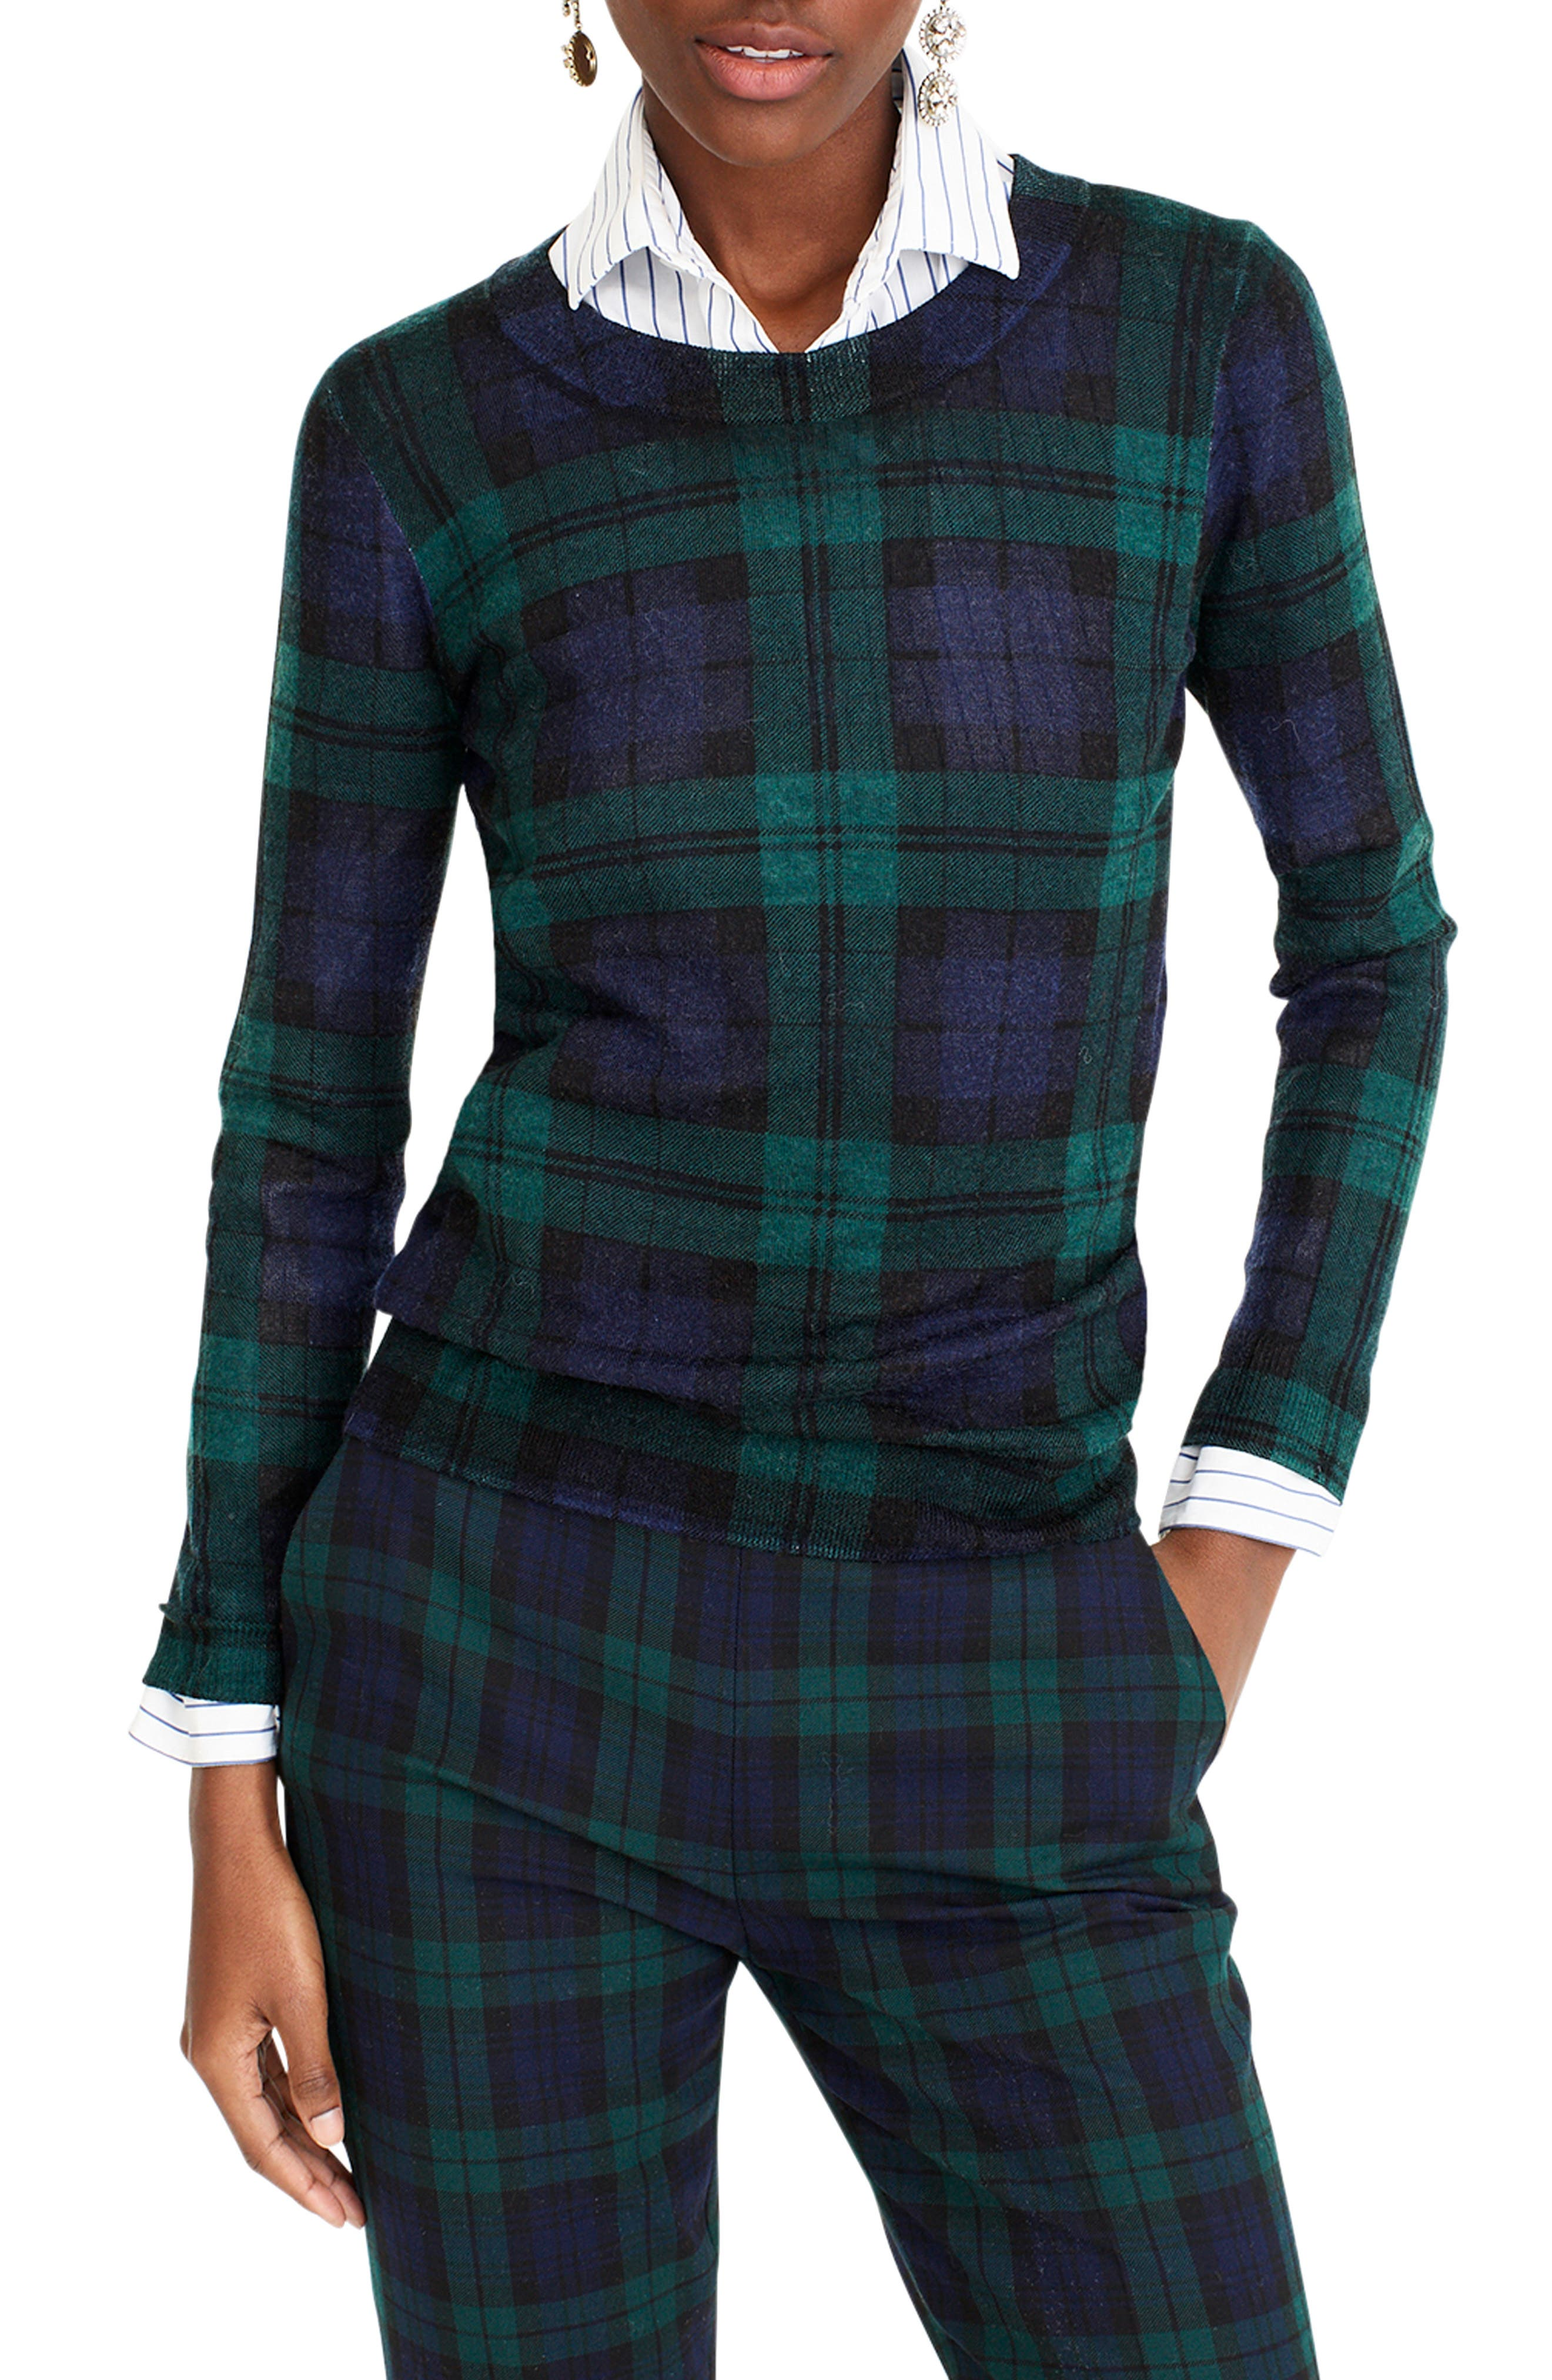 J.CREW,                             Blackwatch Plaid Tippi Sweater,                             Main thumbnail 1, color,                             009